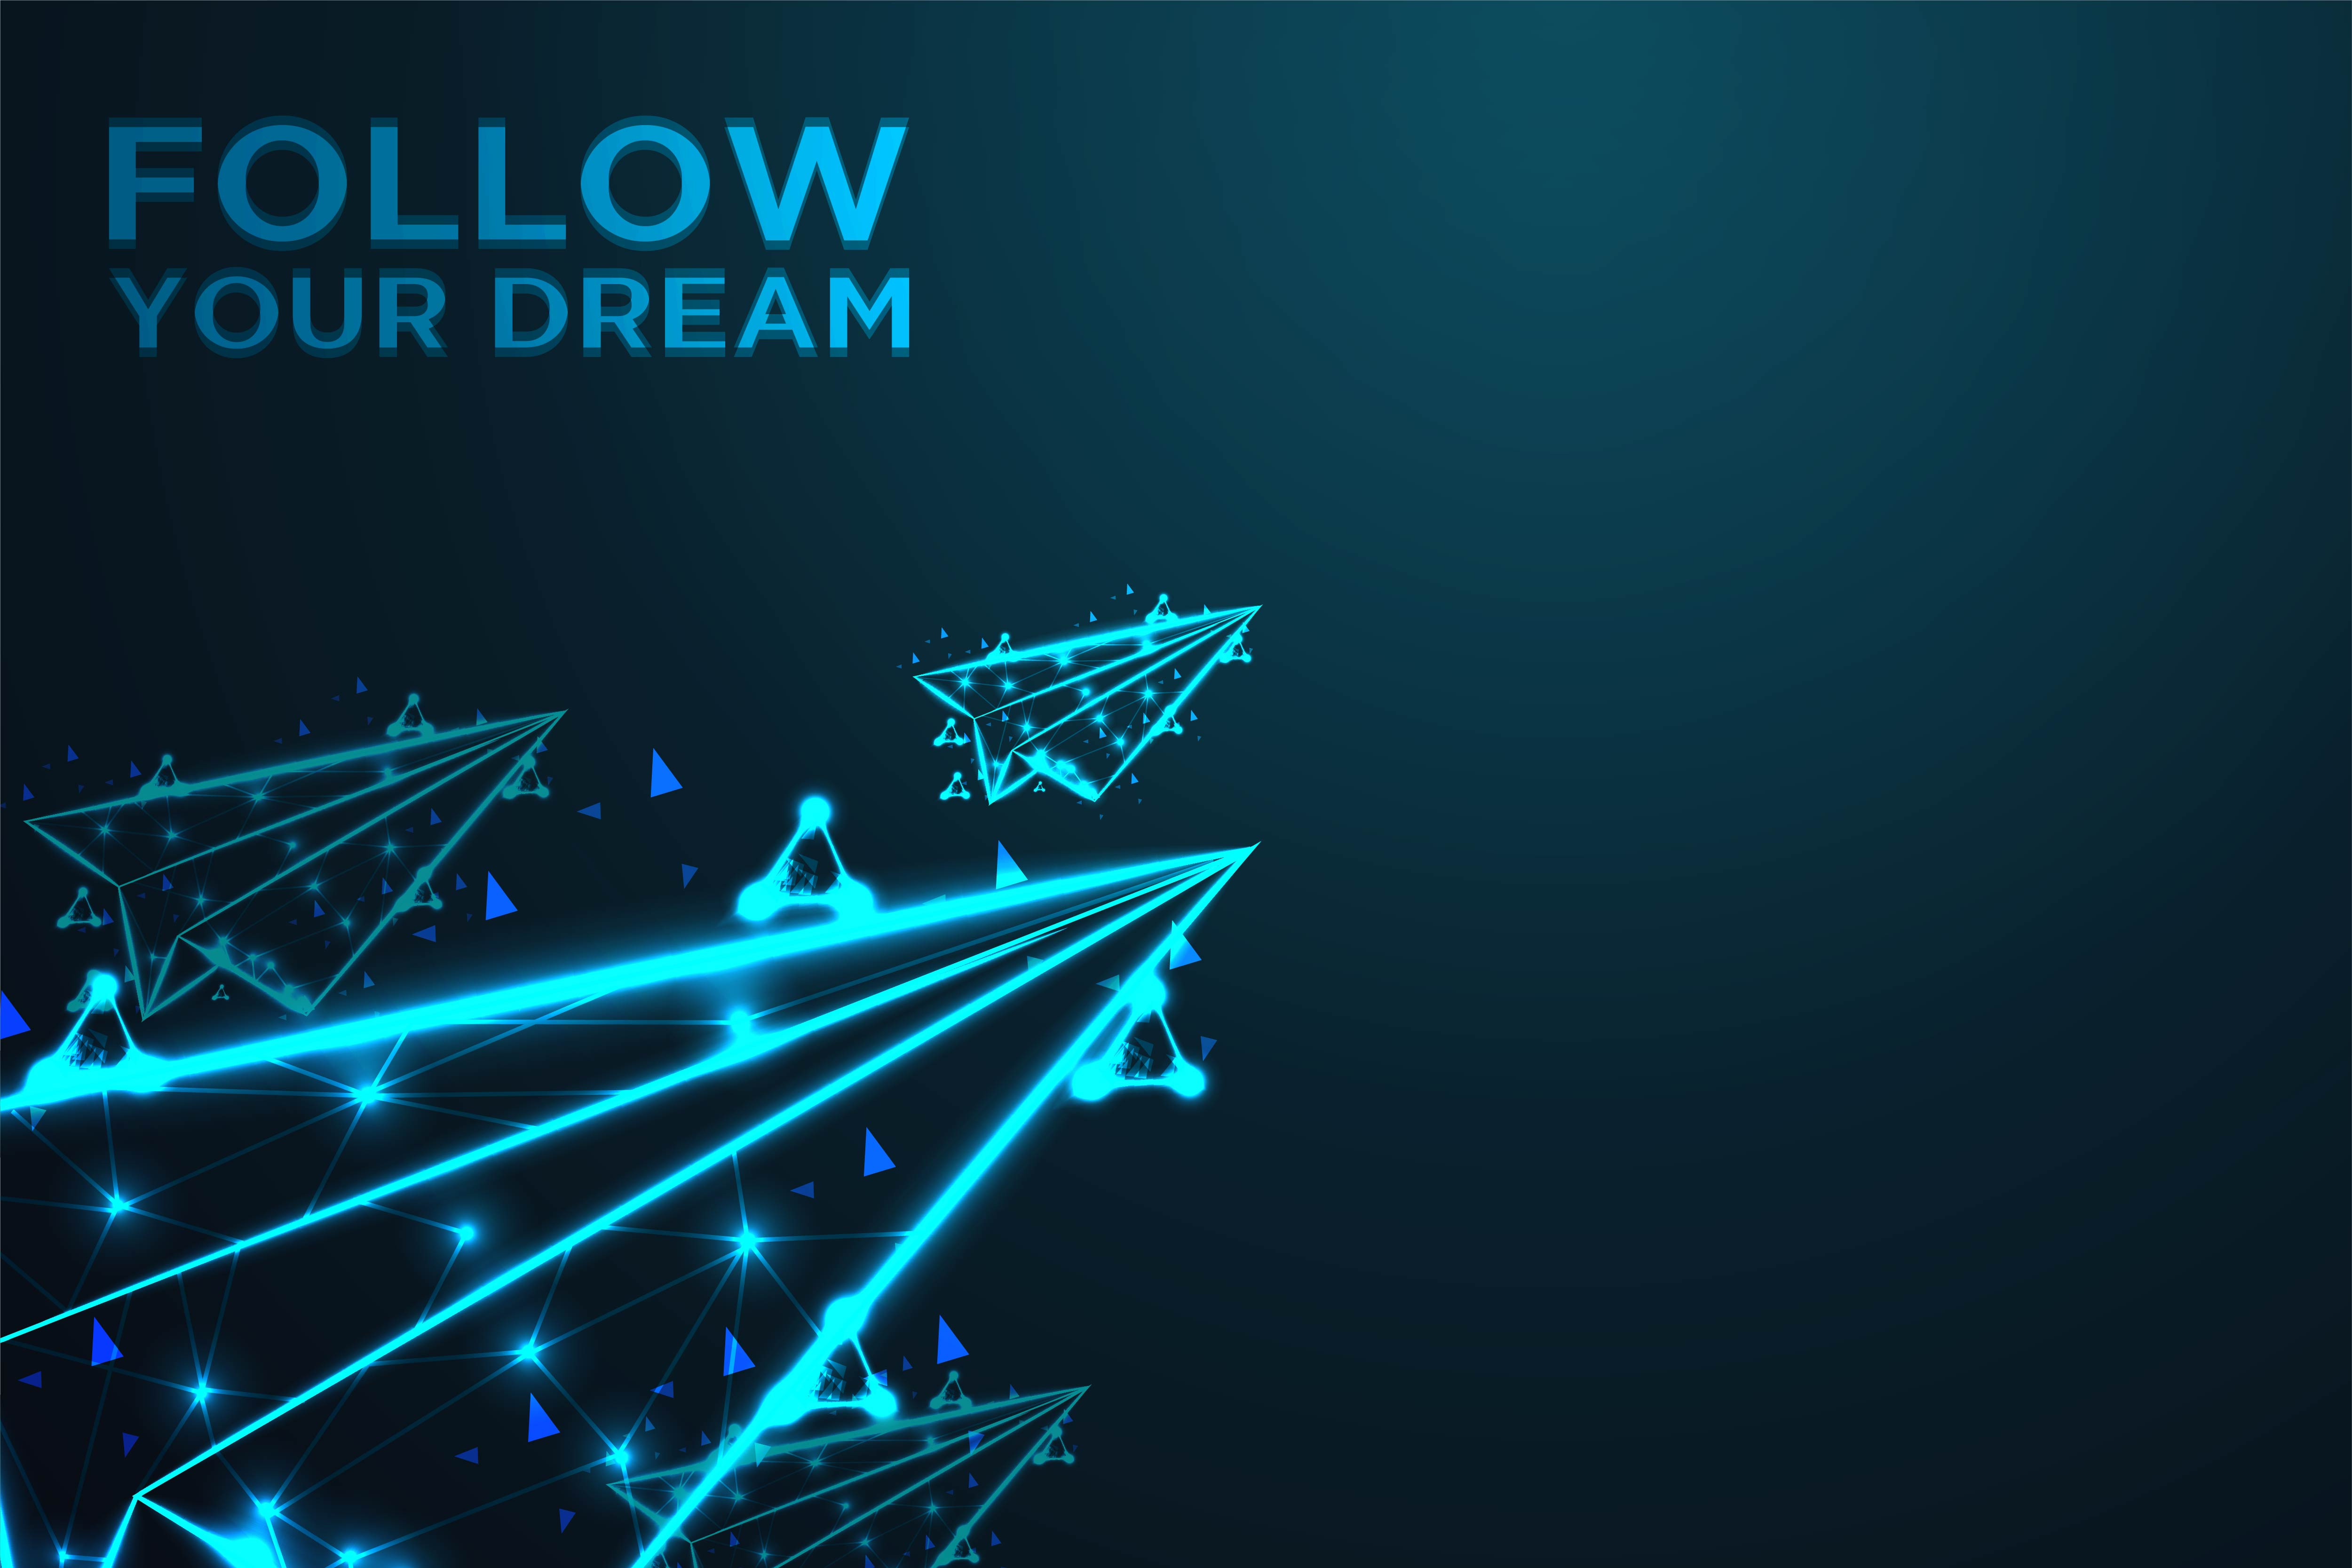 Download Free Flying Paper Plane Follow Your Dream Background Graphic By Ojosujono96 Creative Fabrica for Cricut Explore, Silhouette and other cutting machines.